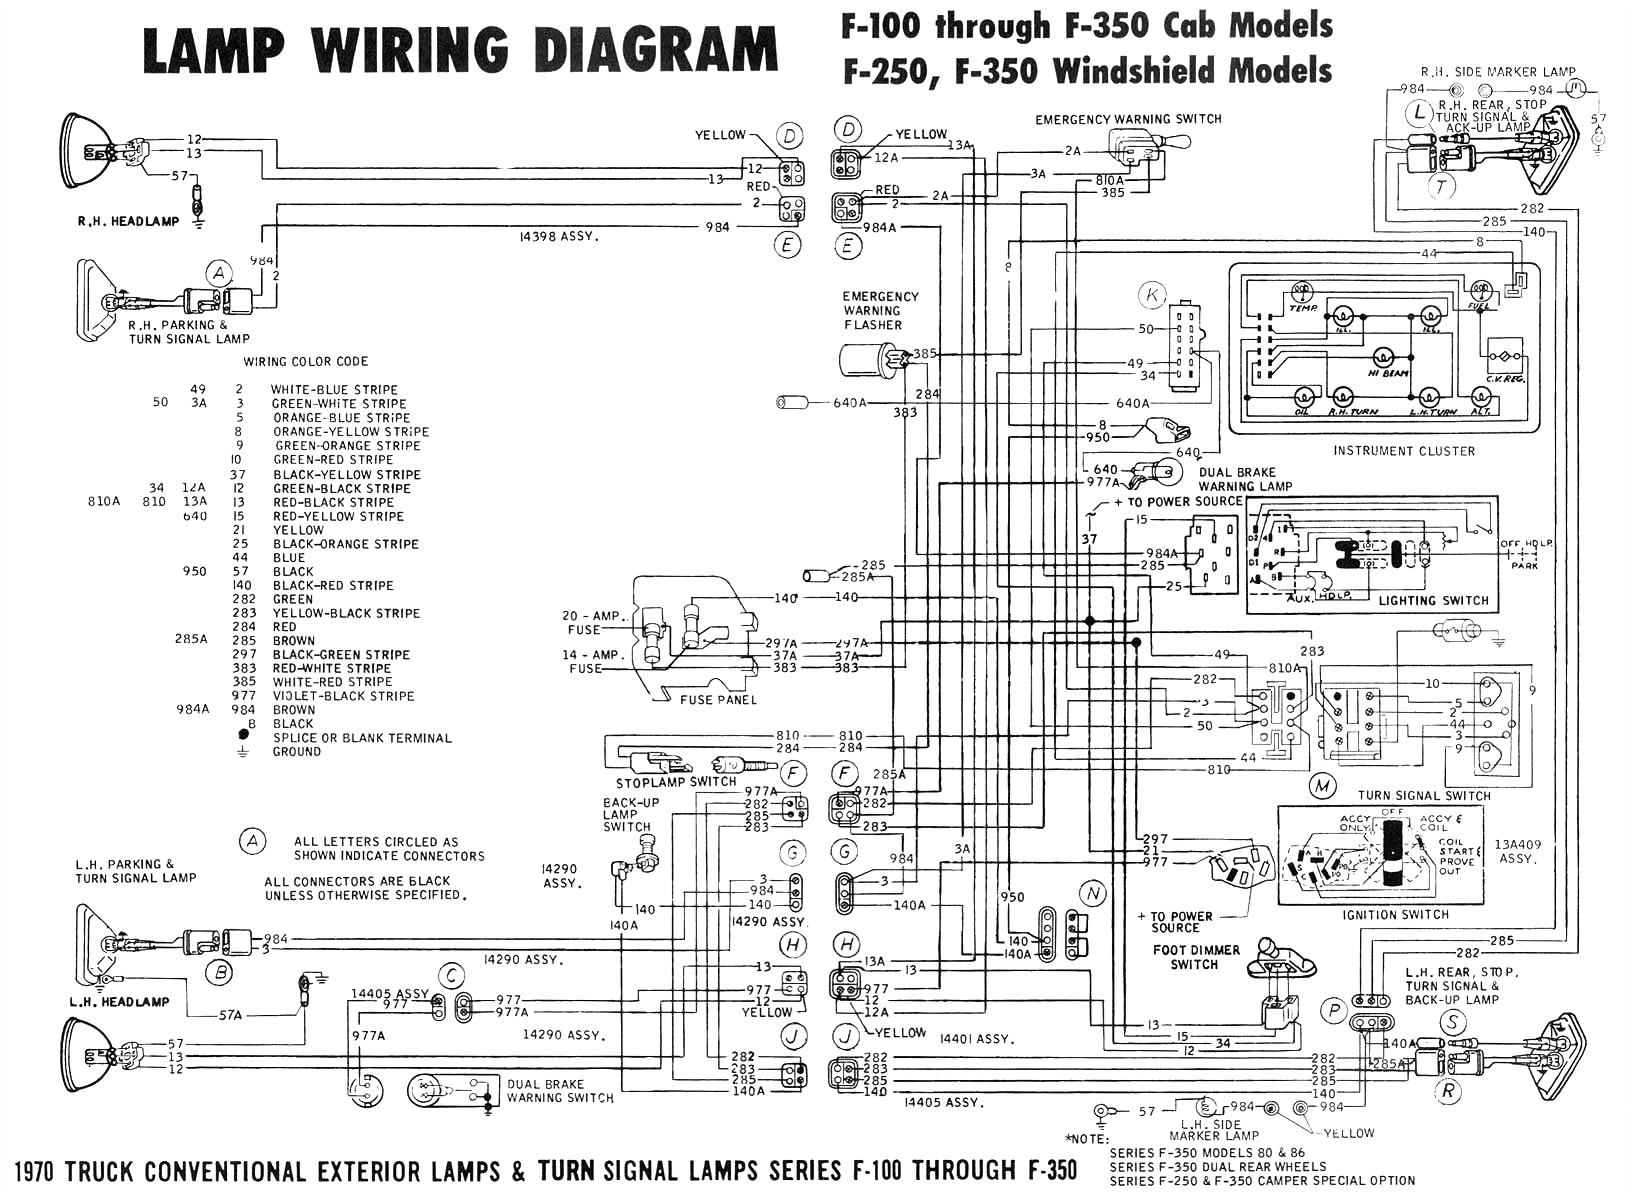 wiring diagram for 04 ford f 250 wiring diagram blog 2004 f250 wiring diagram for reverse lights 04 f250 wiring diagram